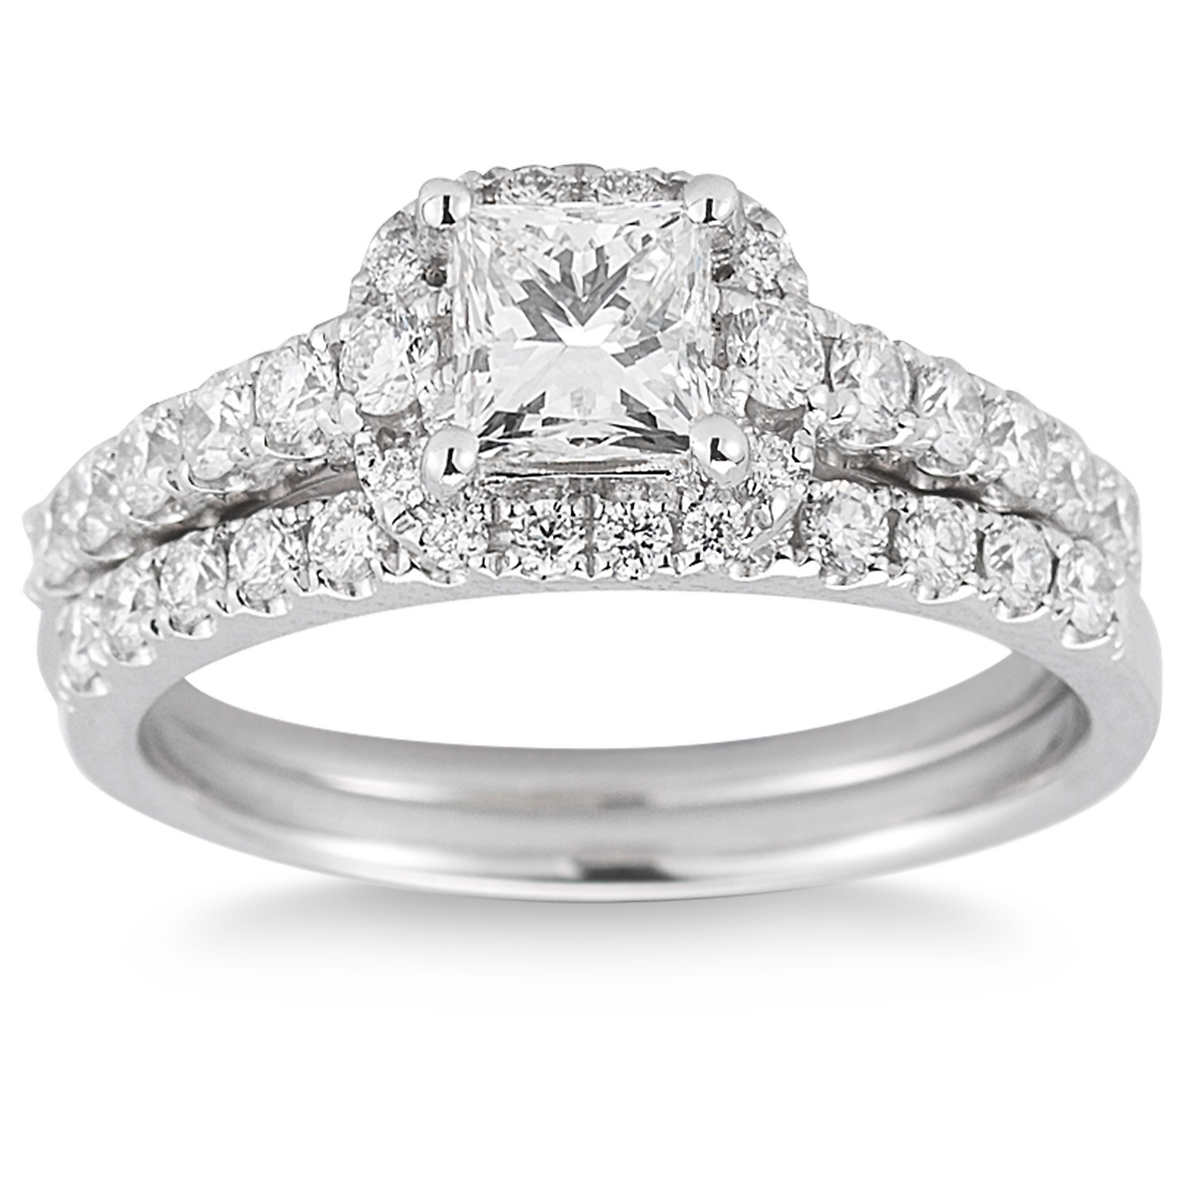 click to zoom - Costco Wedding Rings